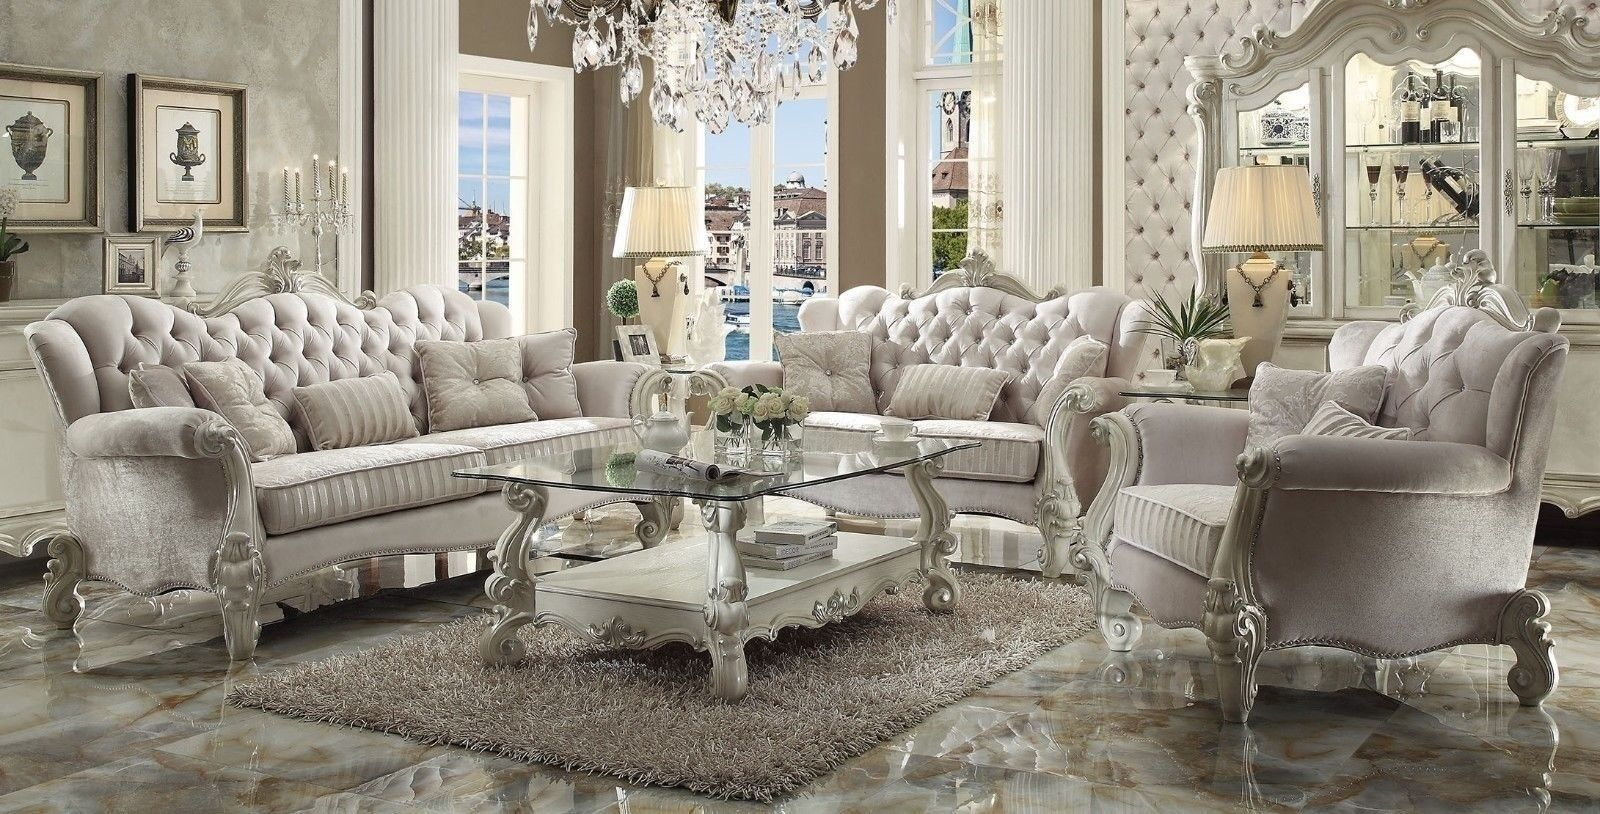 Details about Versailles Traditional 6 Piece Living Room Set Sofa, Love,  Chair, Tables Carved